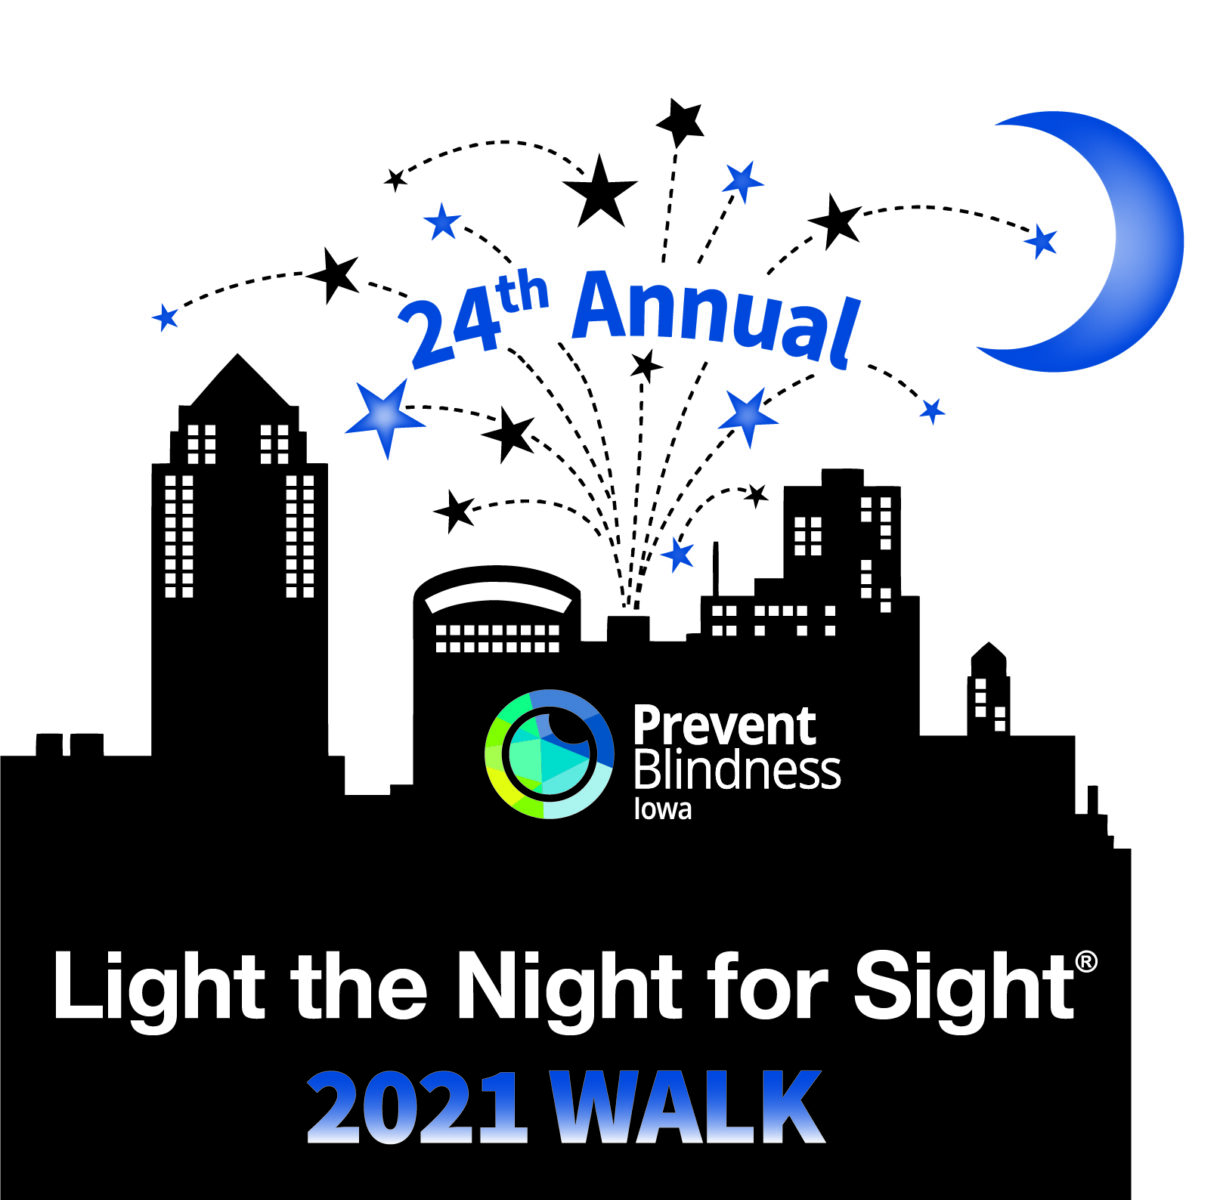 Light the Night for Sight 2021